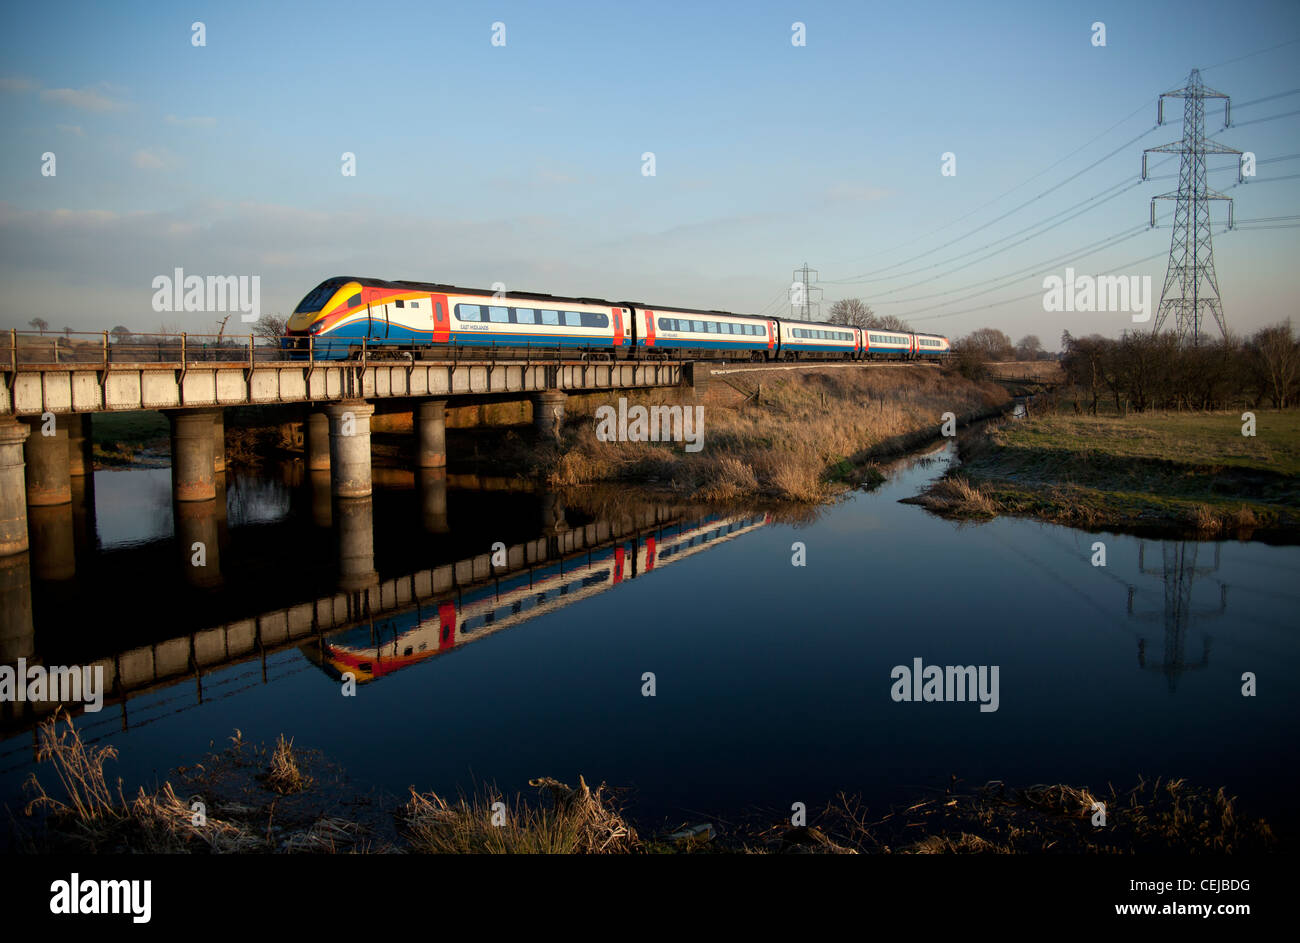 East Midlands Trains class 222 Meridian DMU passenger train reflecting in the River Soar Normanton on Soar, Loughborough,England - Stock Image